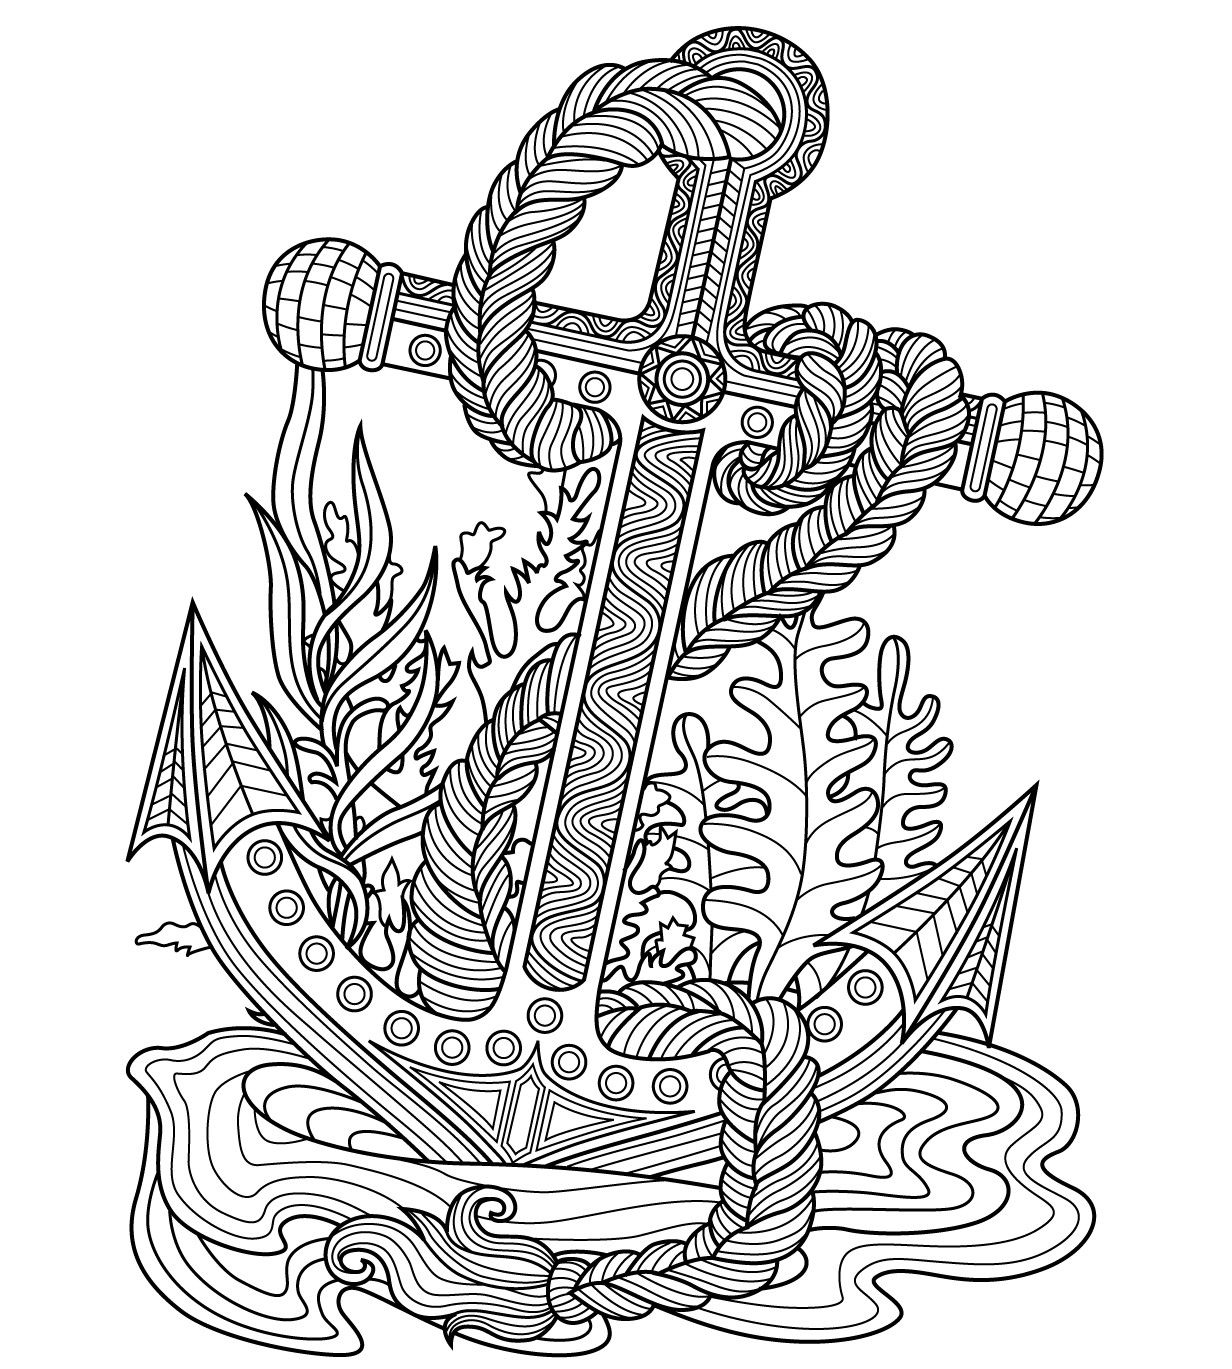 Turn Pictures Into Coloring Pages App Beautiful Anchor Sea ...